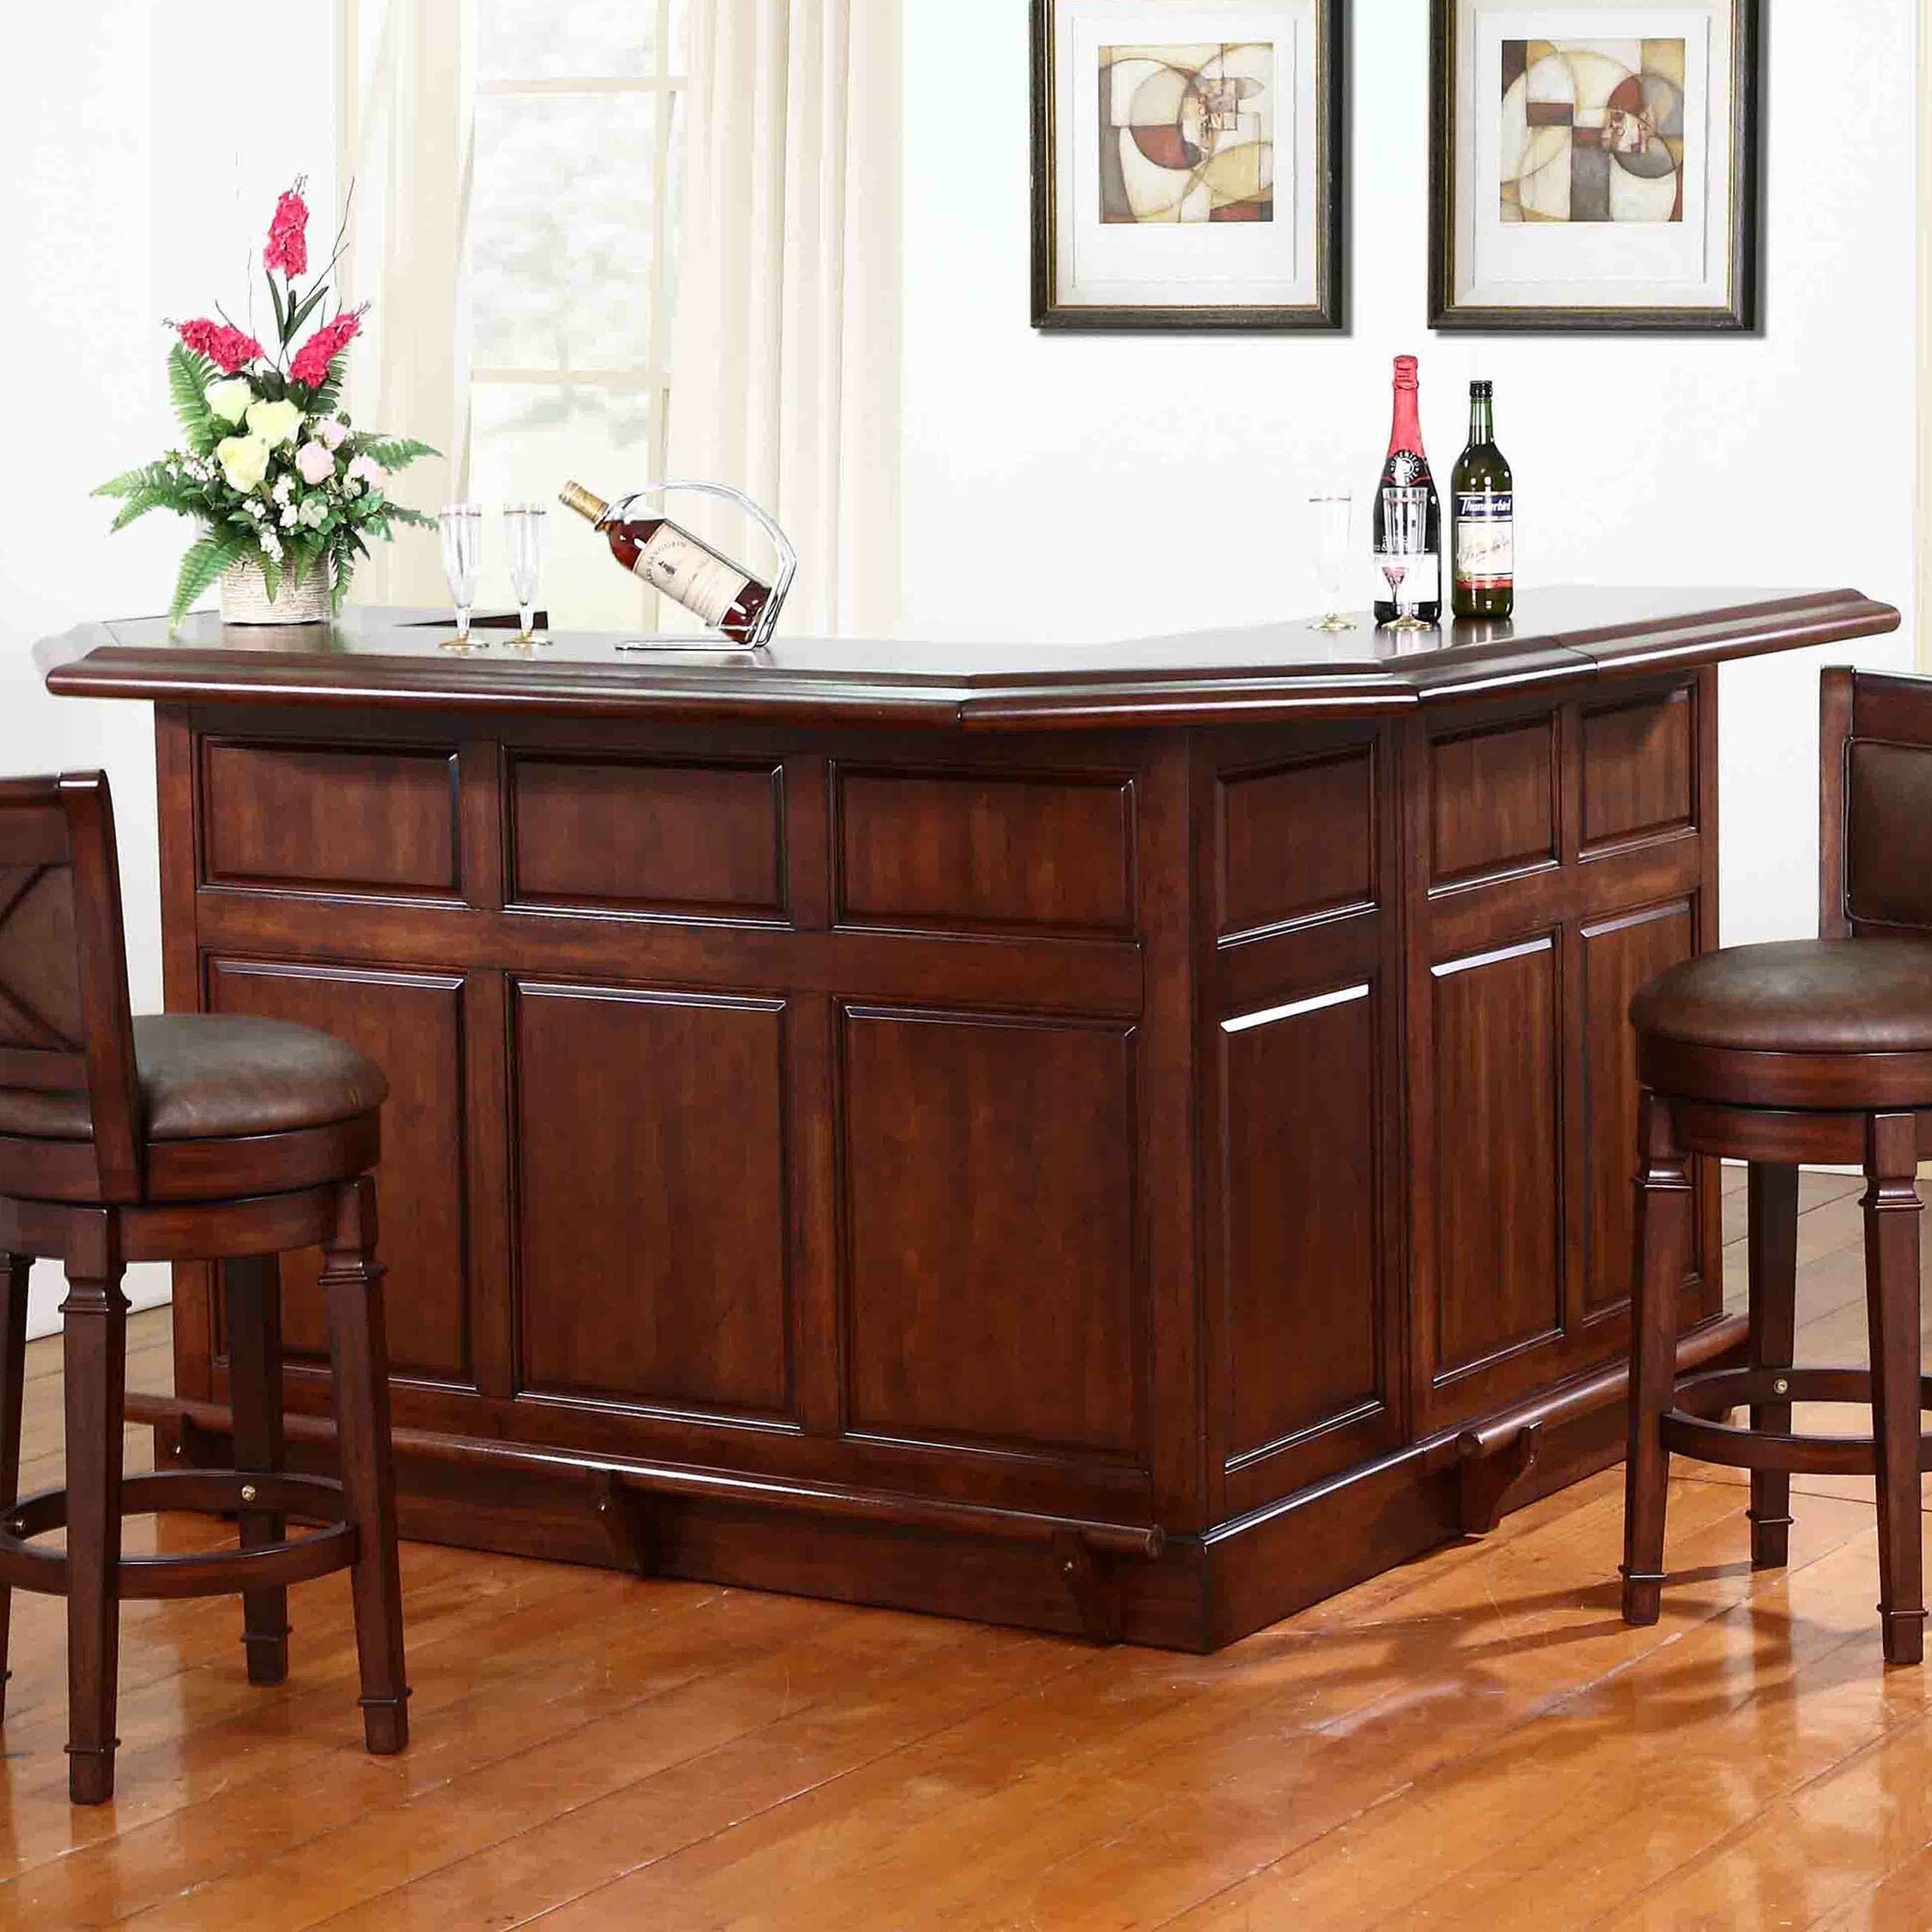 Eci Furniture Belvedere Home Bar Ebay